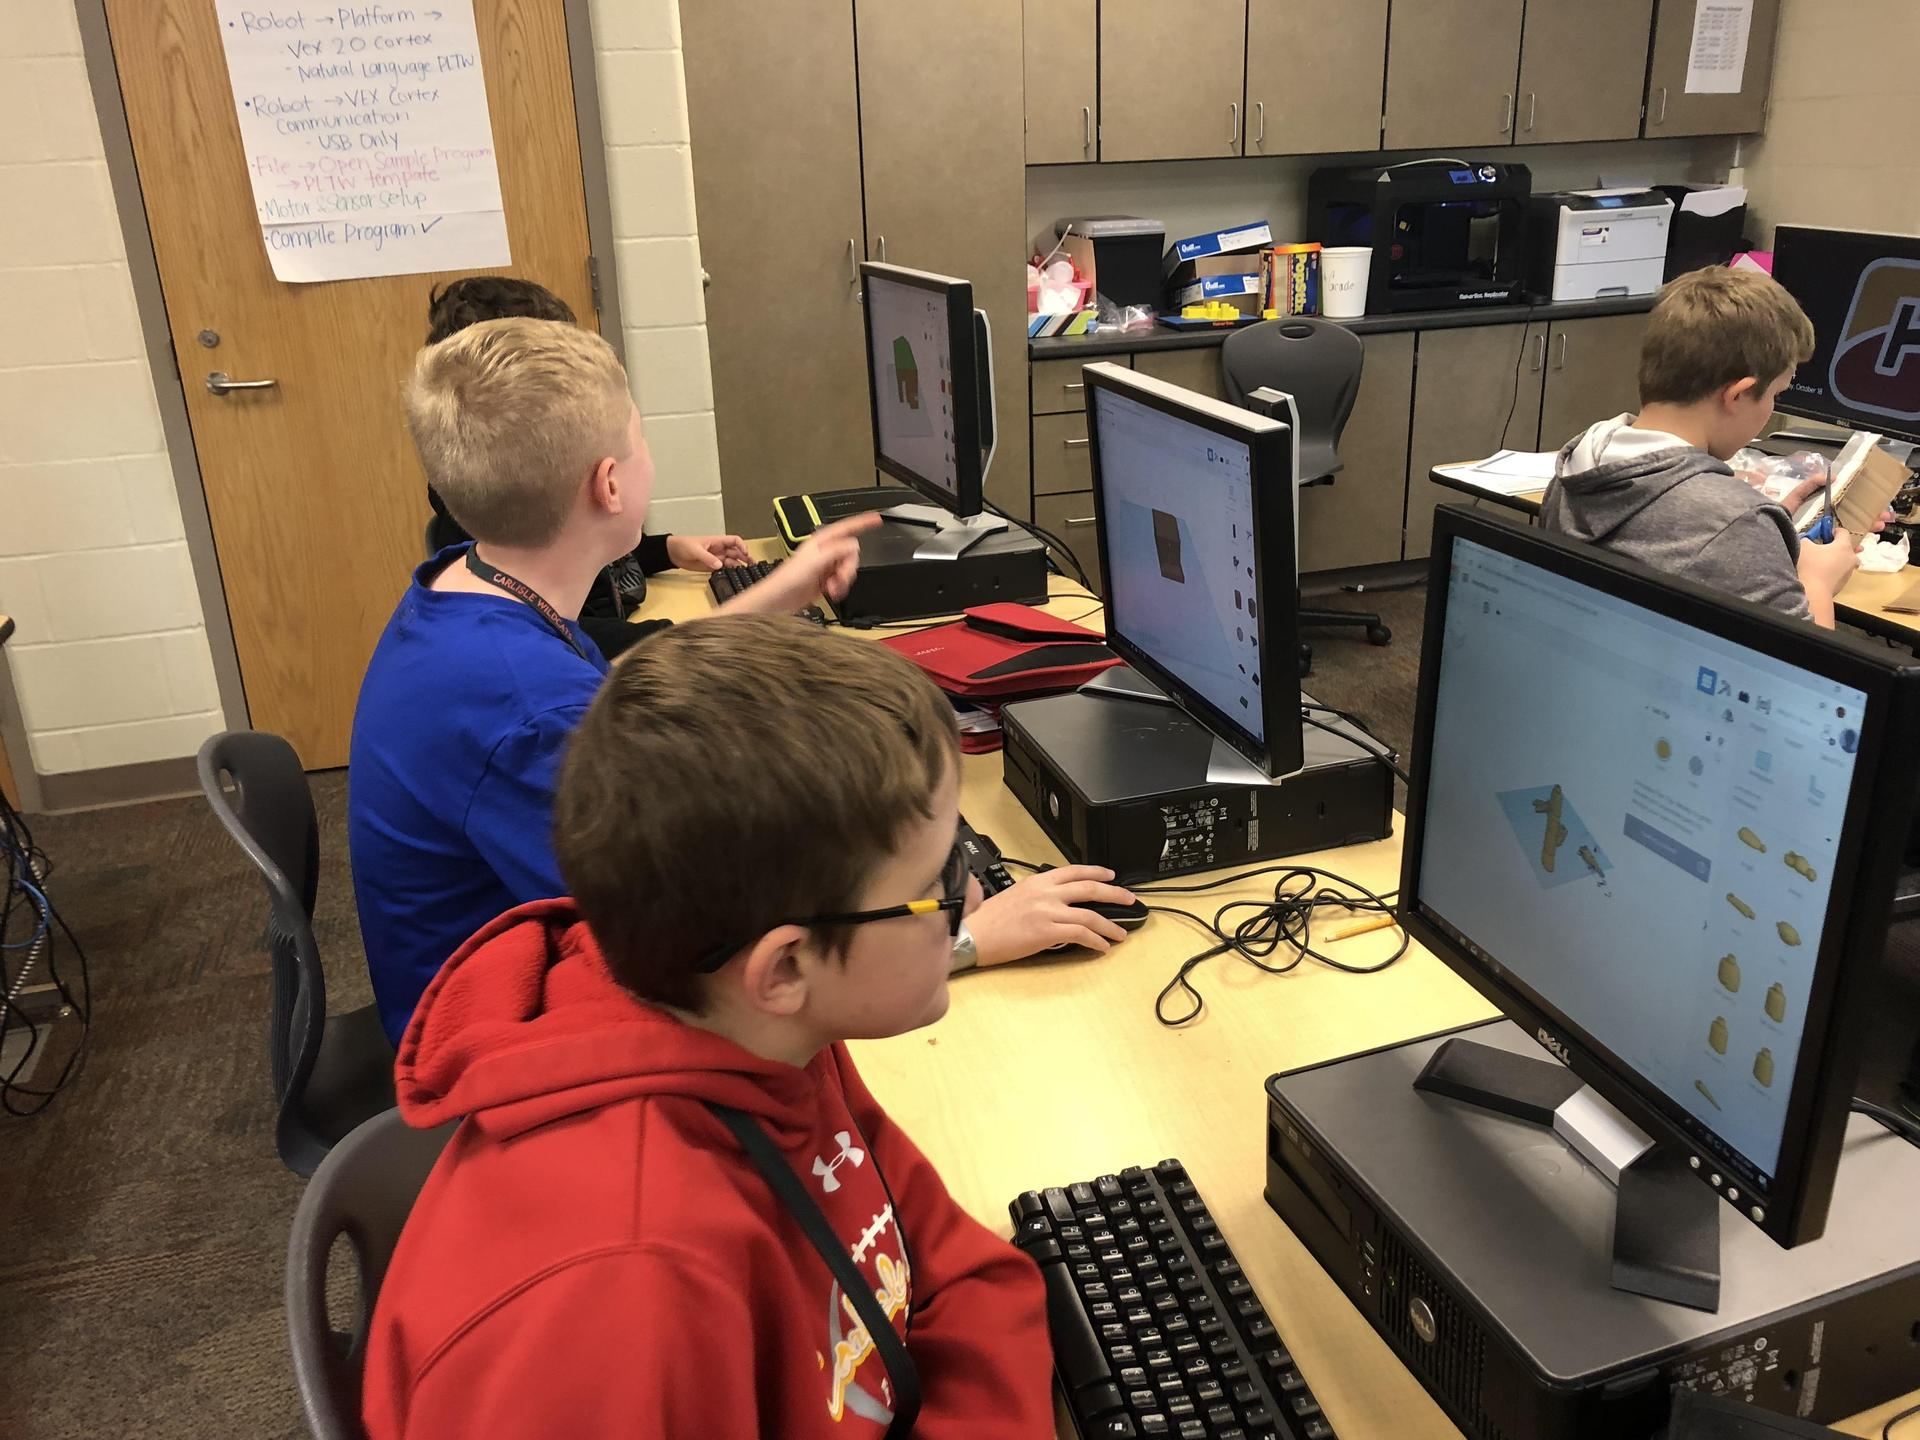 6th Graders designing 3d images in CAD software